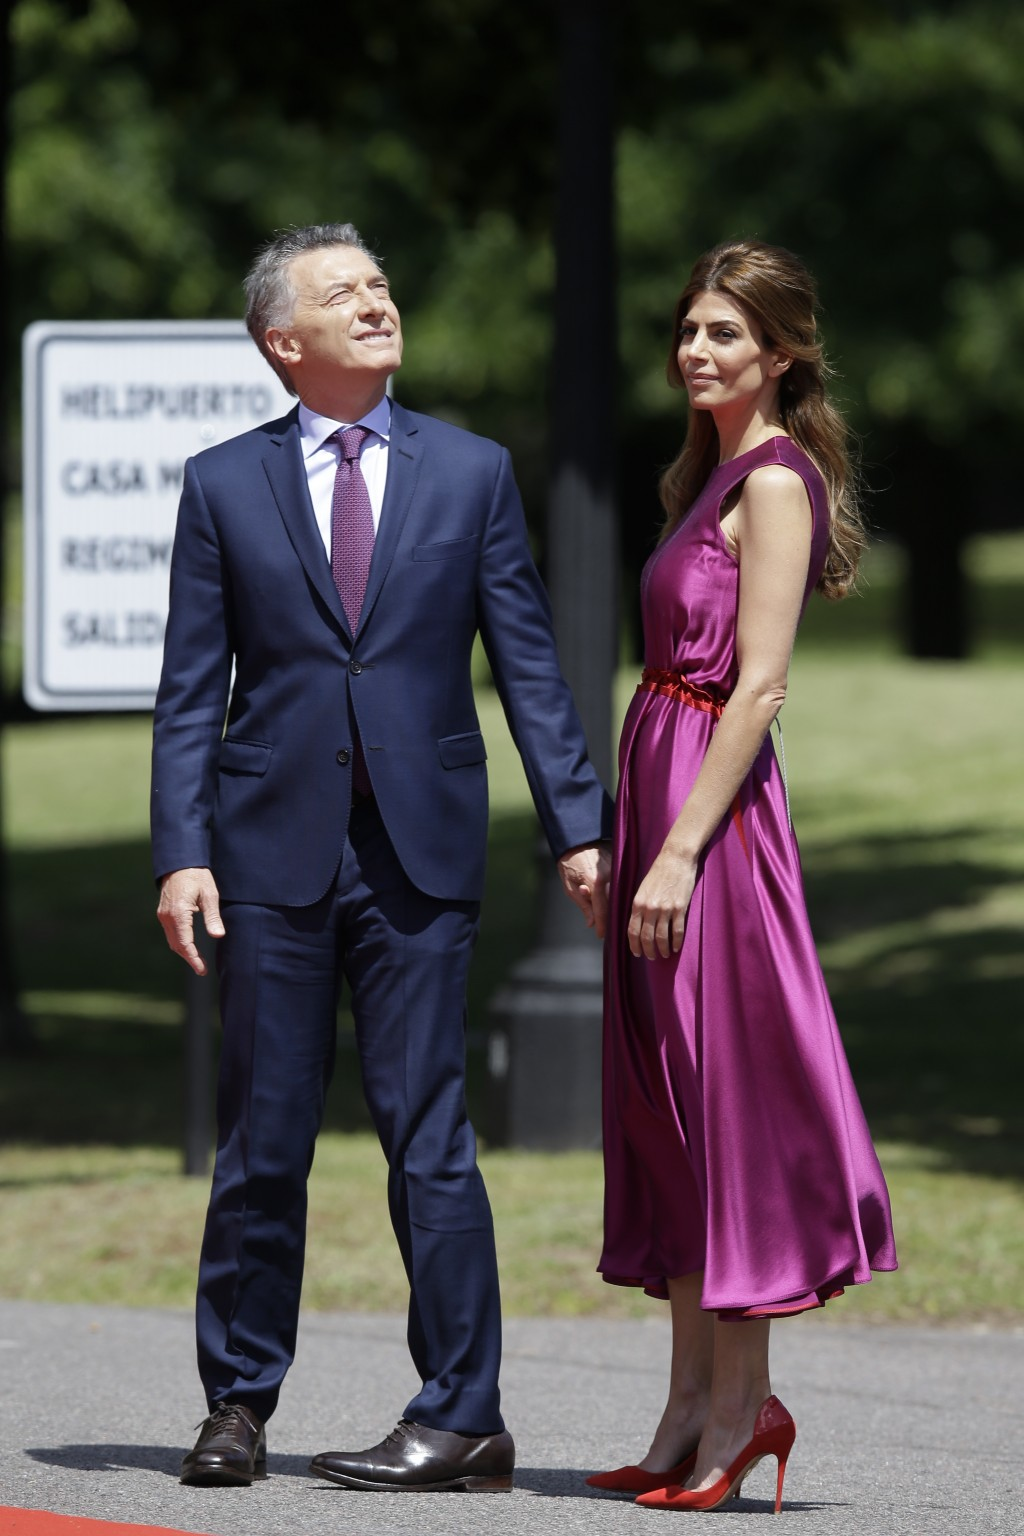 Argentina's President Mauricio Macri, left, and first lady Juliana Awada wait for the arrival of China's President Xi Jinping at presidential residenc...